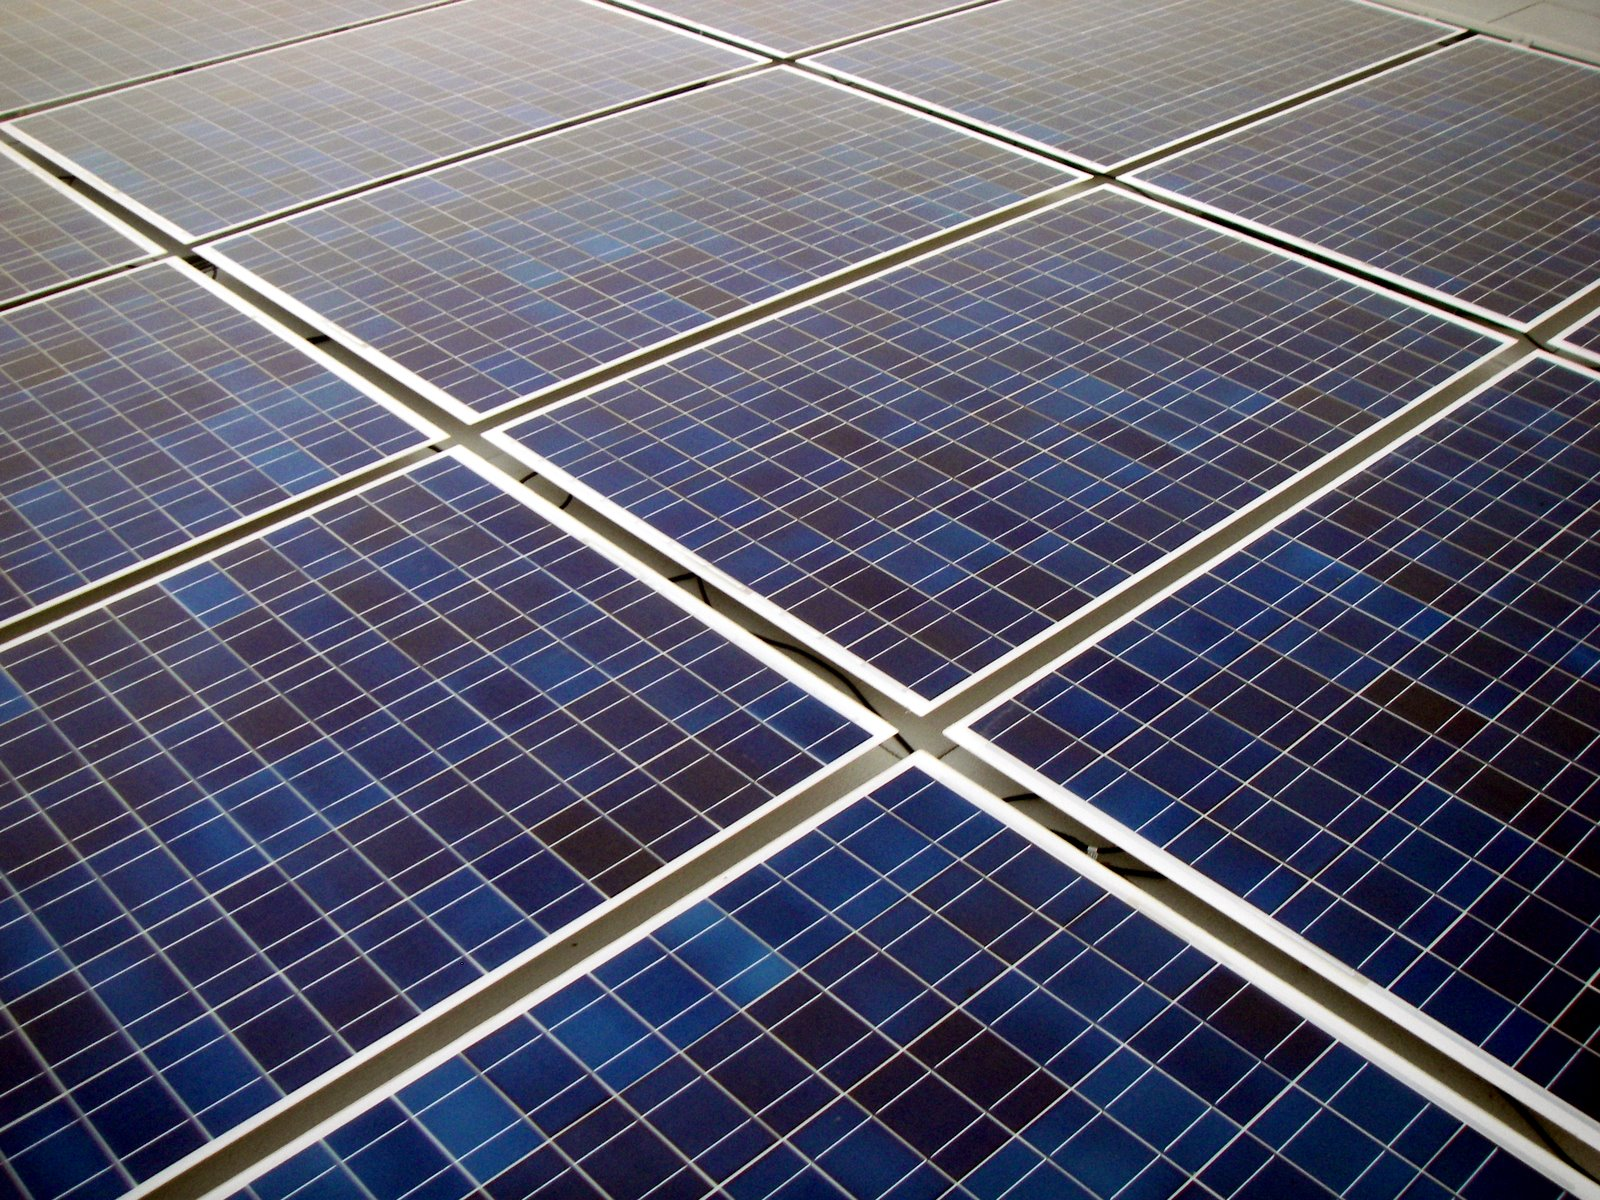 Solar panel grid up close